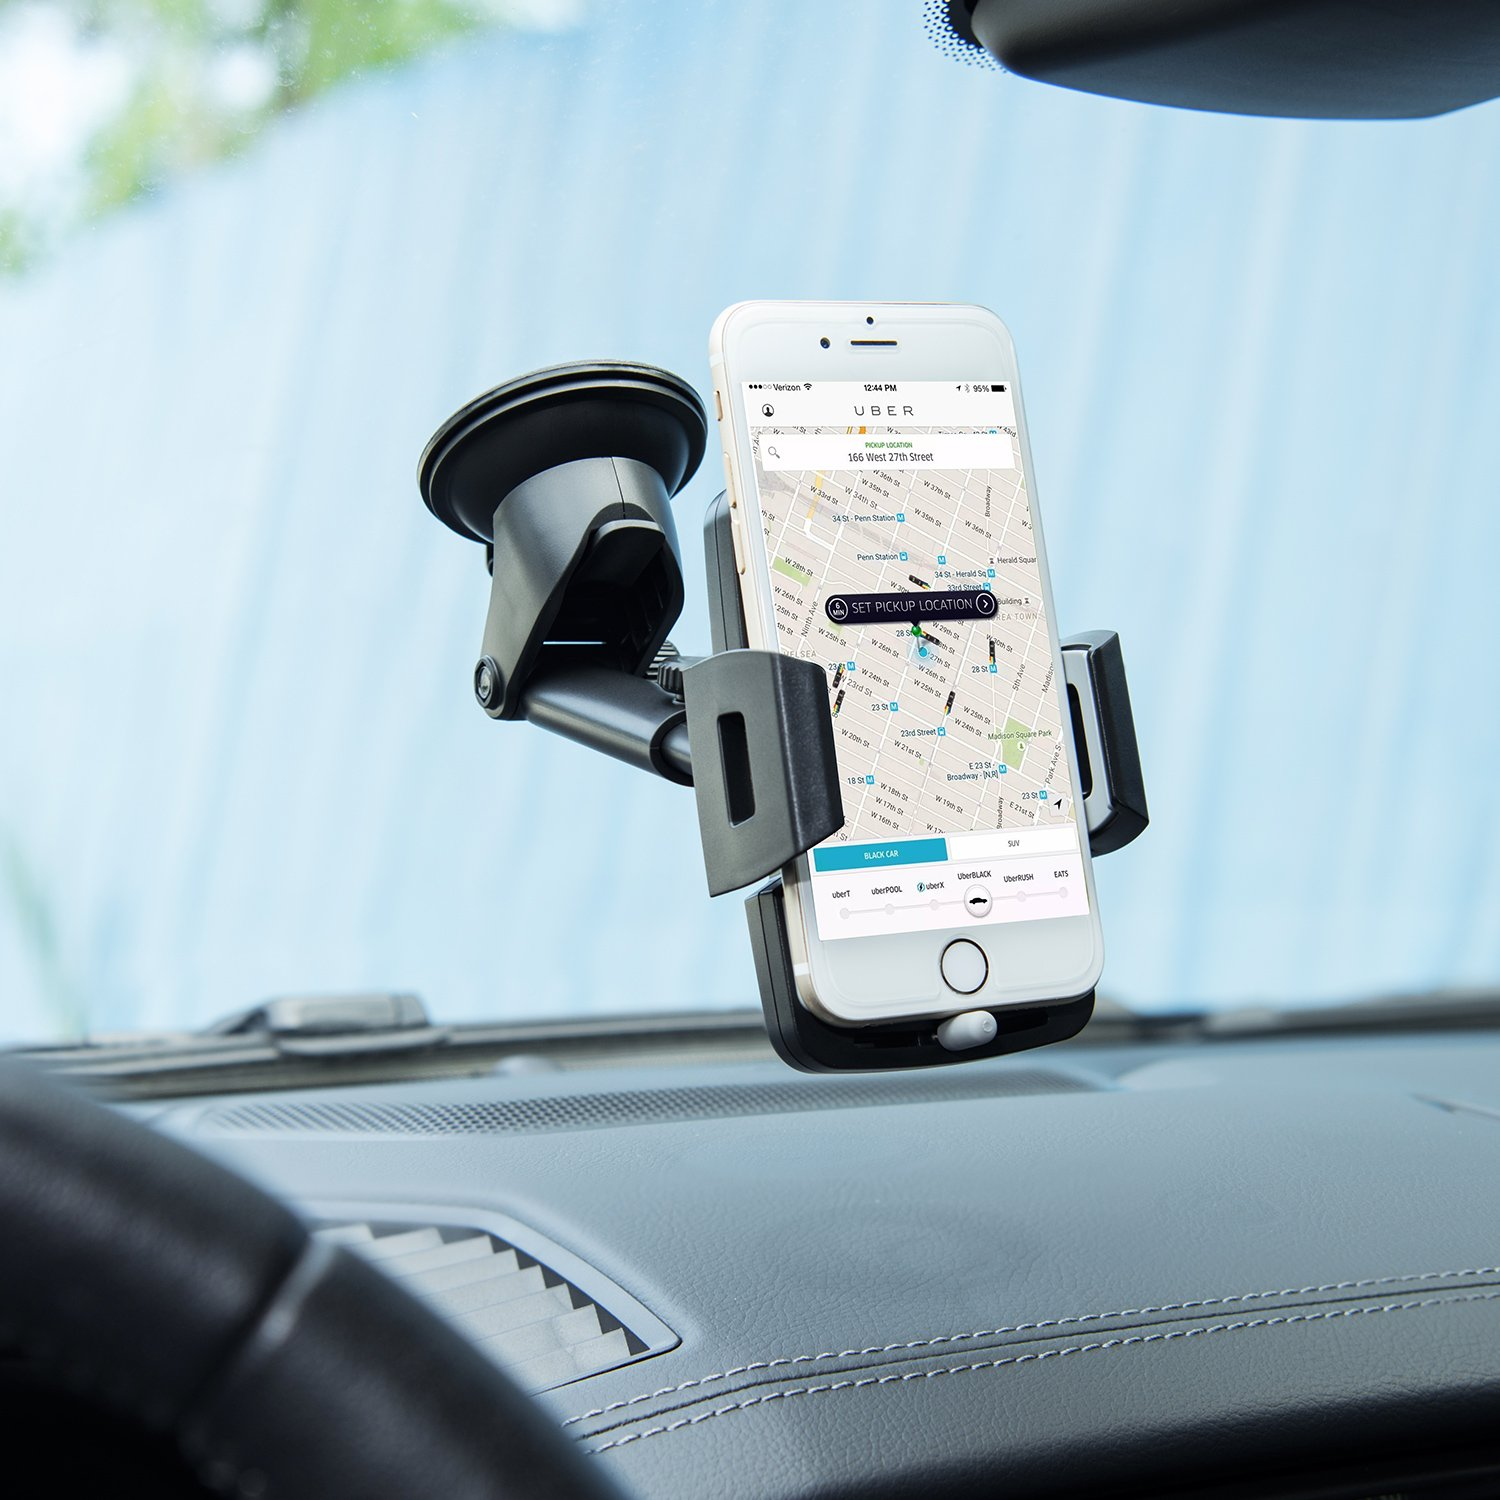 Car Phone Mount Dashboard Car Phone Holder Washable Strong Sticky Gel Pad with One-Touch Design Compatible iPhone 11 pro,11 pro max,X,XS,XR,8,7,6 Plus,Galaxy S7,8,9,10,Google Nexus